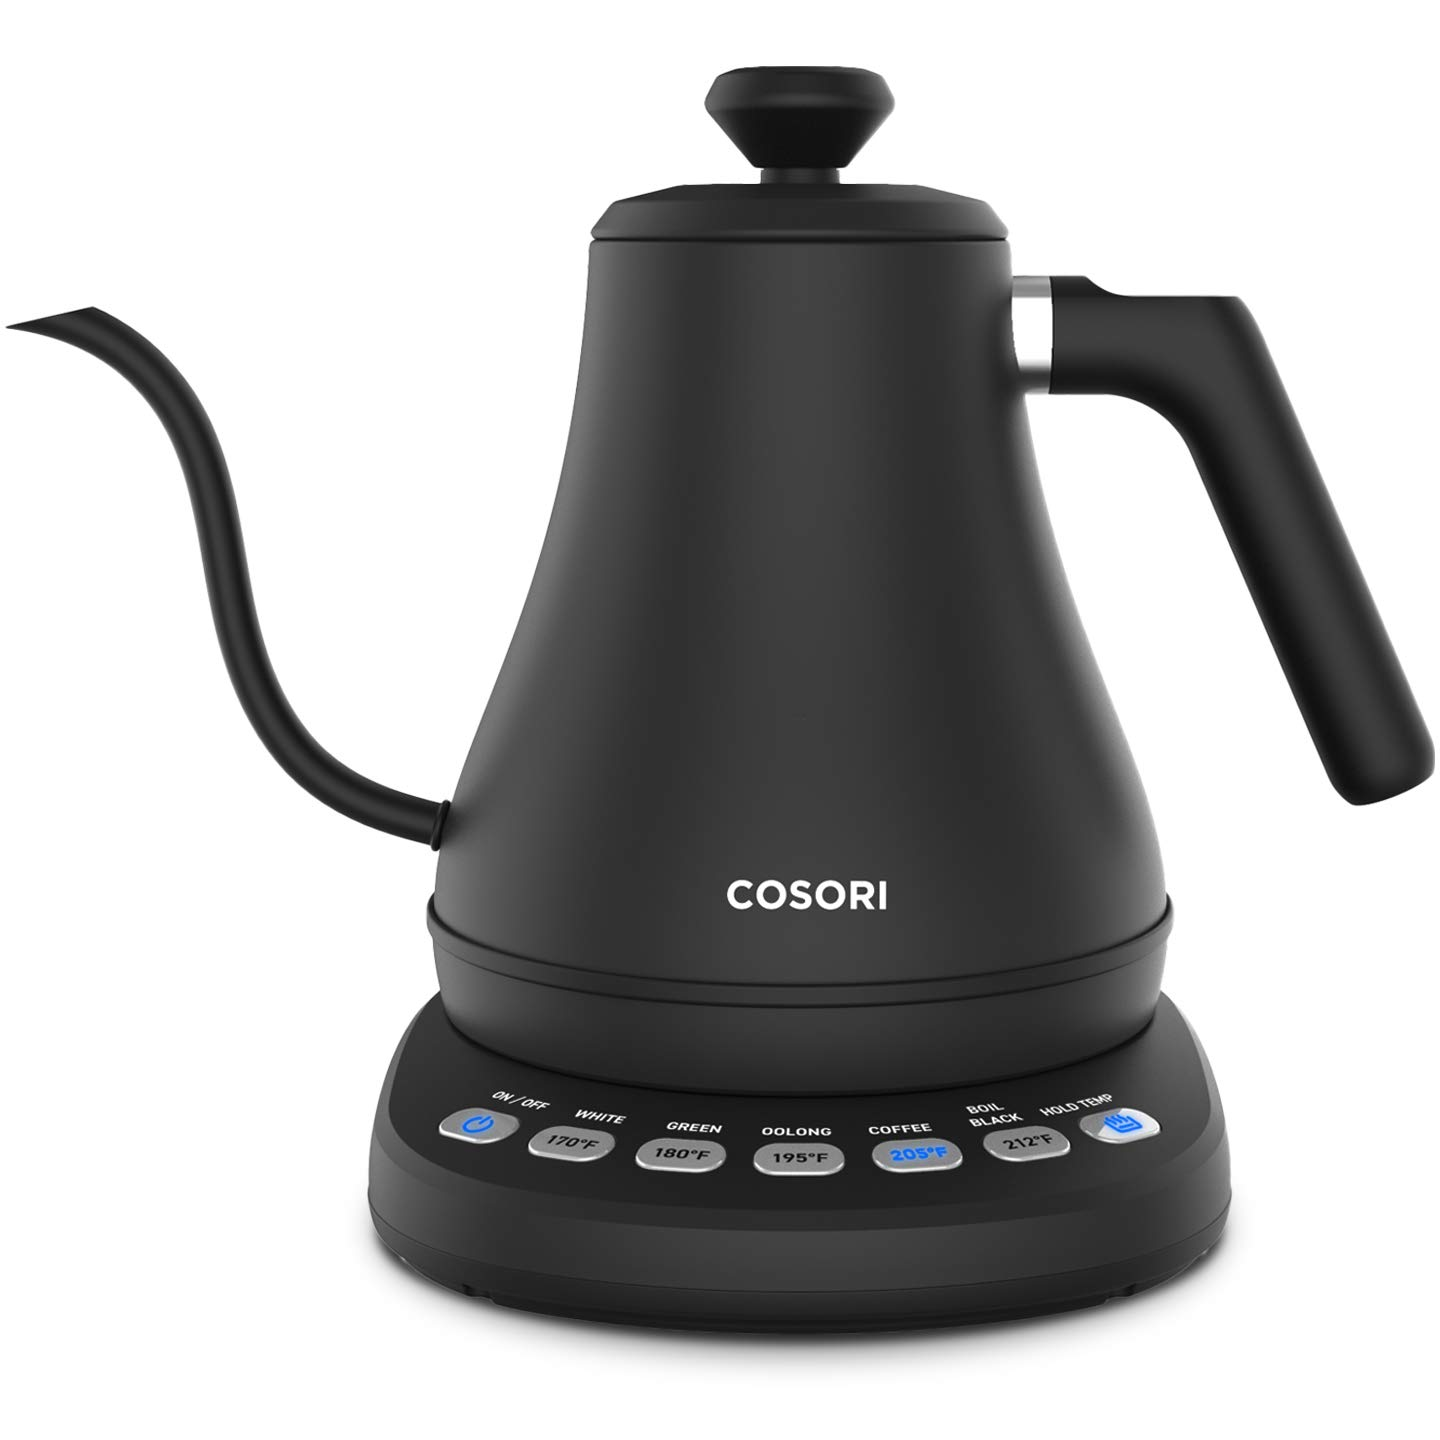 COSORI Electric Gooseneck Kettle with 5 Variable Presets, Pour Over Coffee Kettle & Tea Kettle, 100% Stainless Steel Inner Lid & Bottom, 1200 Watt Quick Heating, 2-year Warranty, 0.8L, Matte Black by COSORI